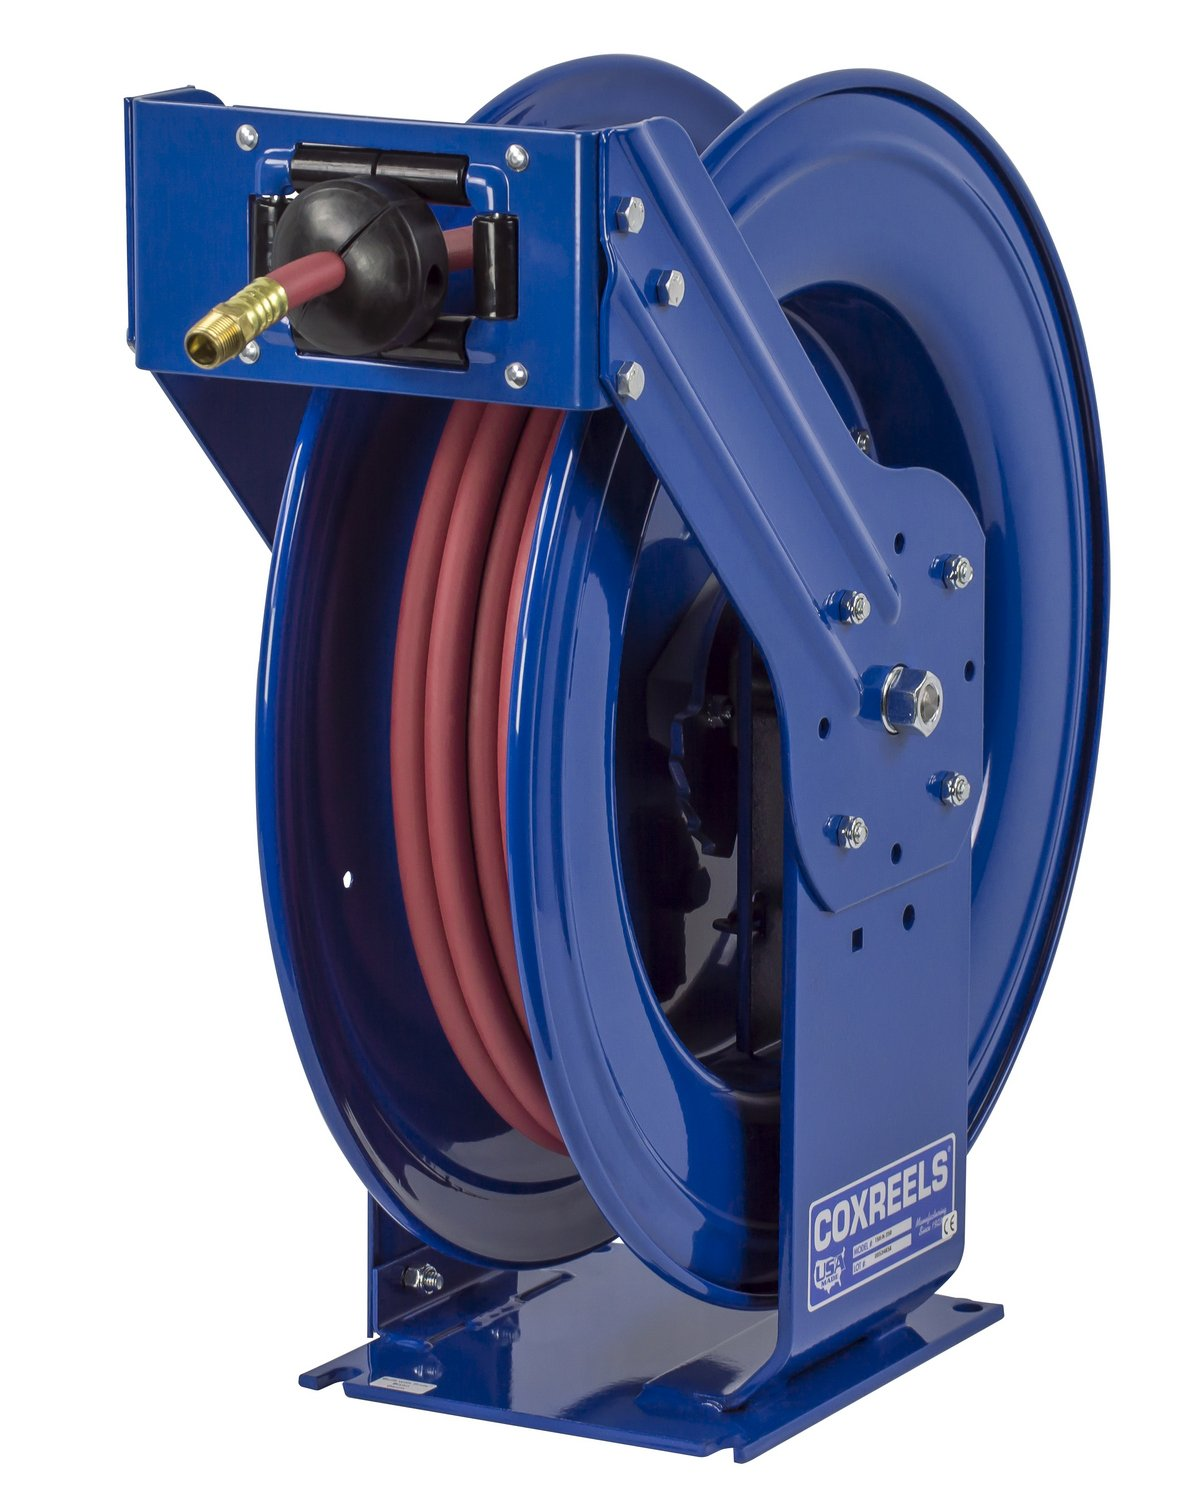 Coxreels Truck Series Maximum-Duty Air Hose Reel, Max. 300 PSI, Model# TSH-N-3100, 3/8'' Hose ID, 100' Length